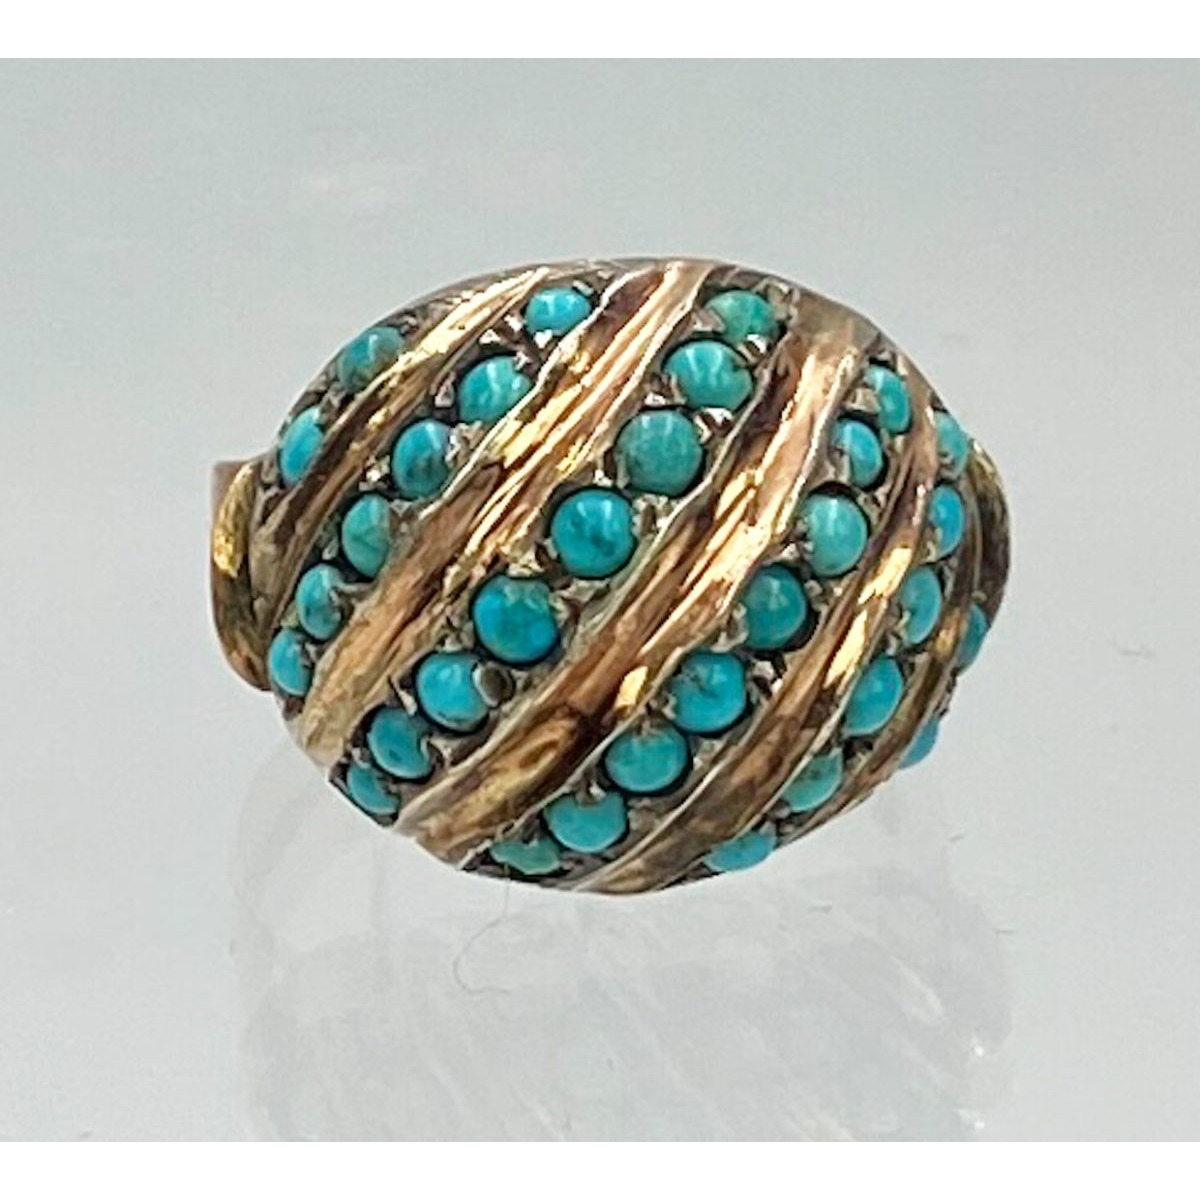 Diagonal Rows of Persian Turquoise in a Rose Gold Antique English Dome Ring